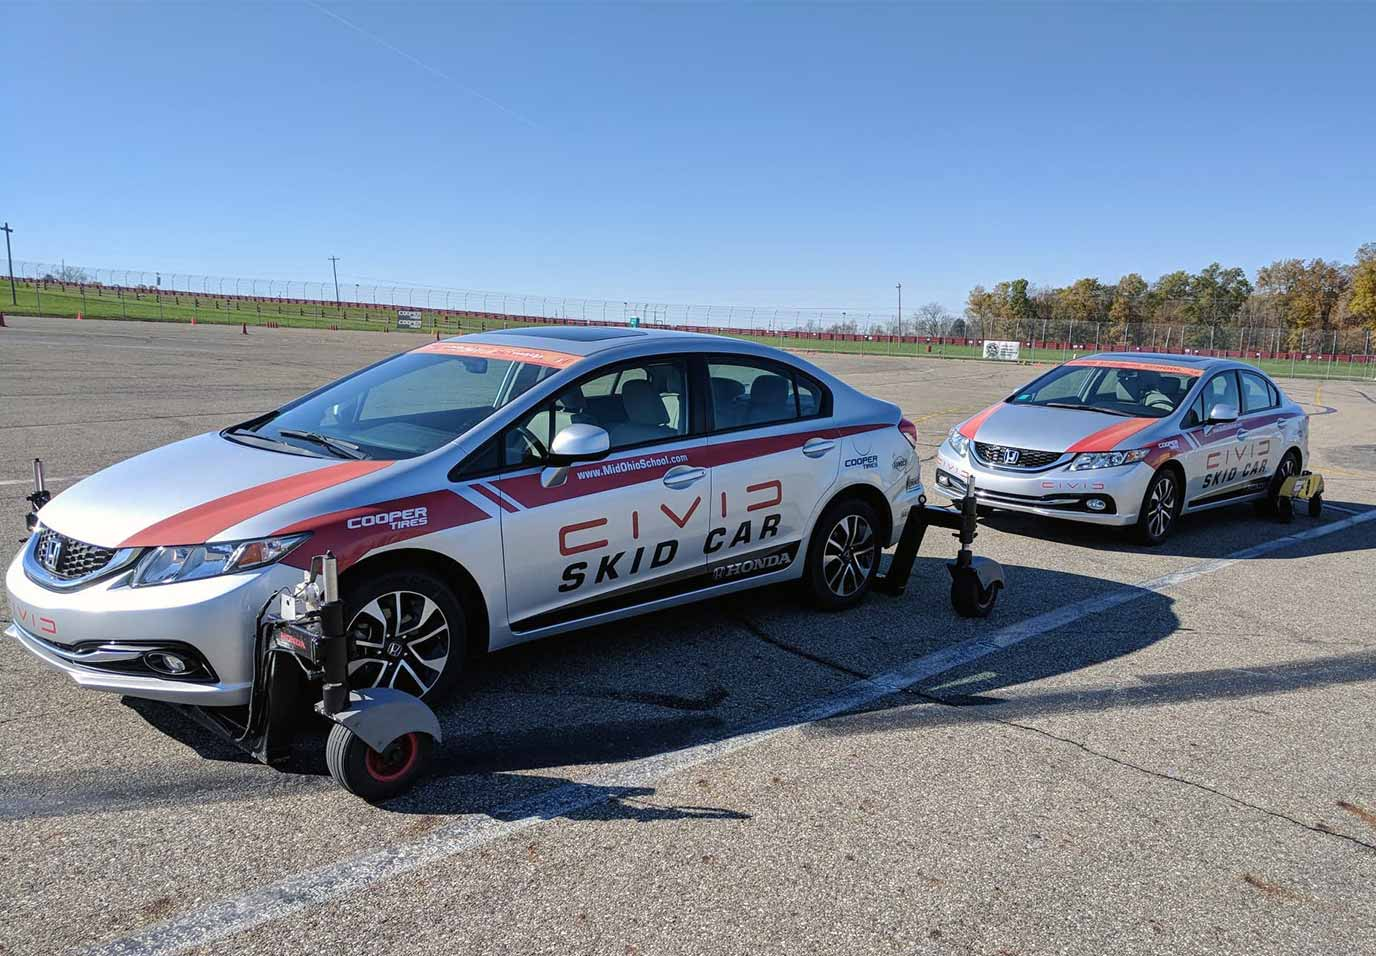 2013 Honda Civic EX-L Skid Car